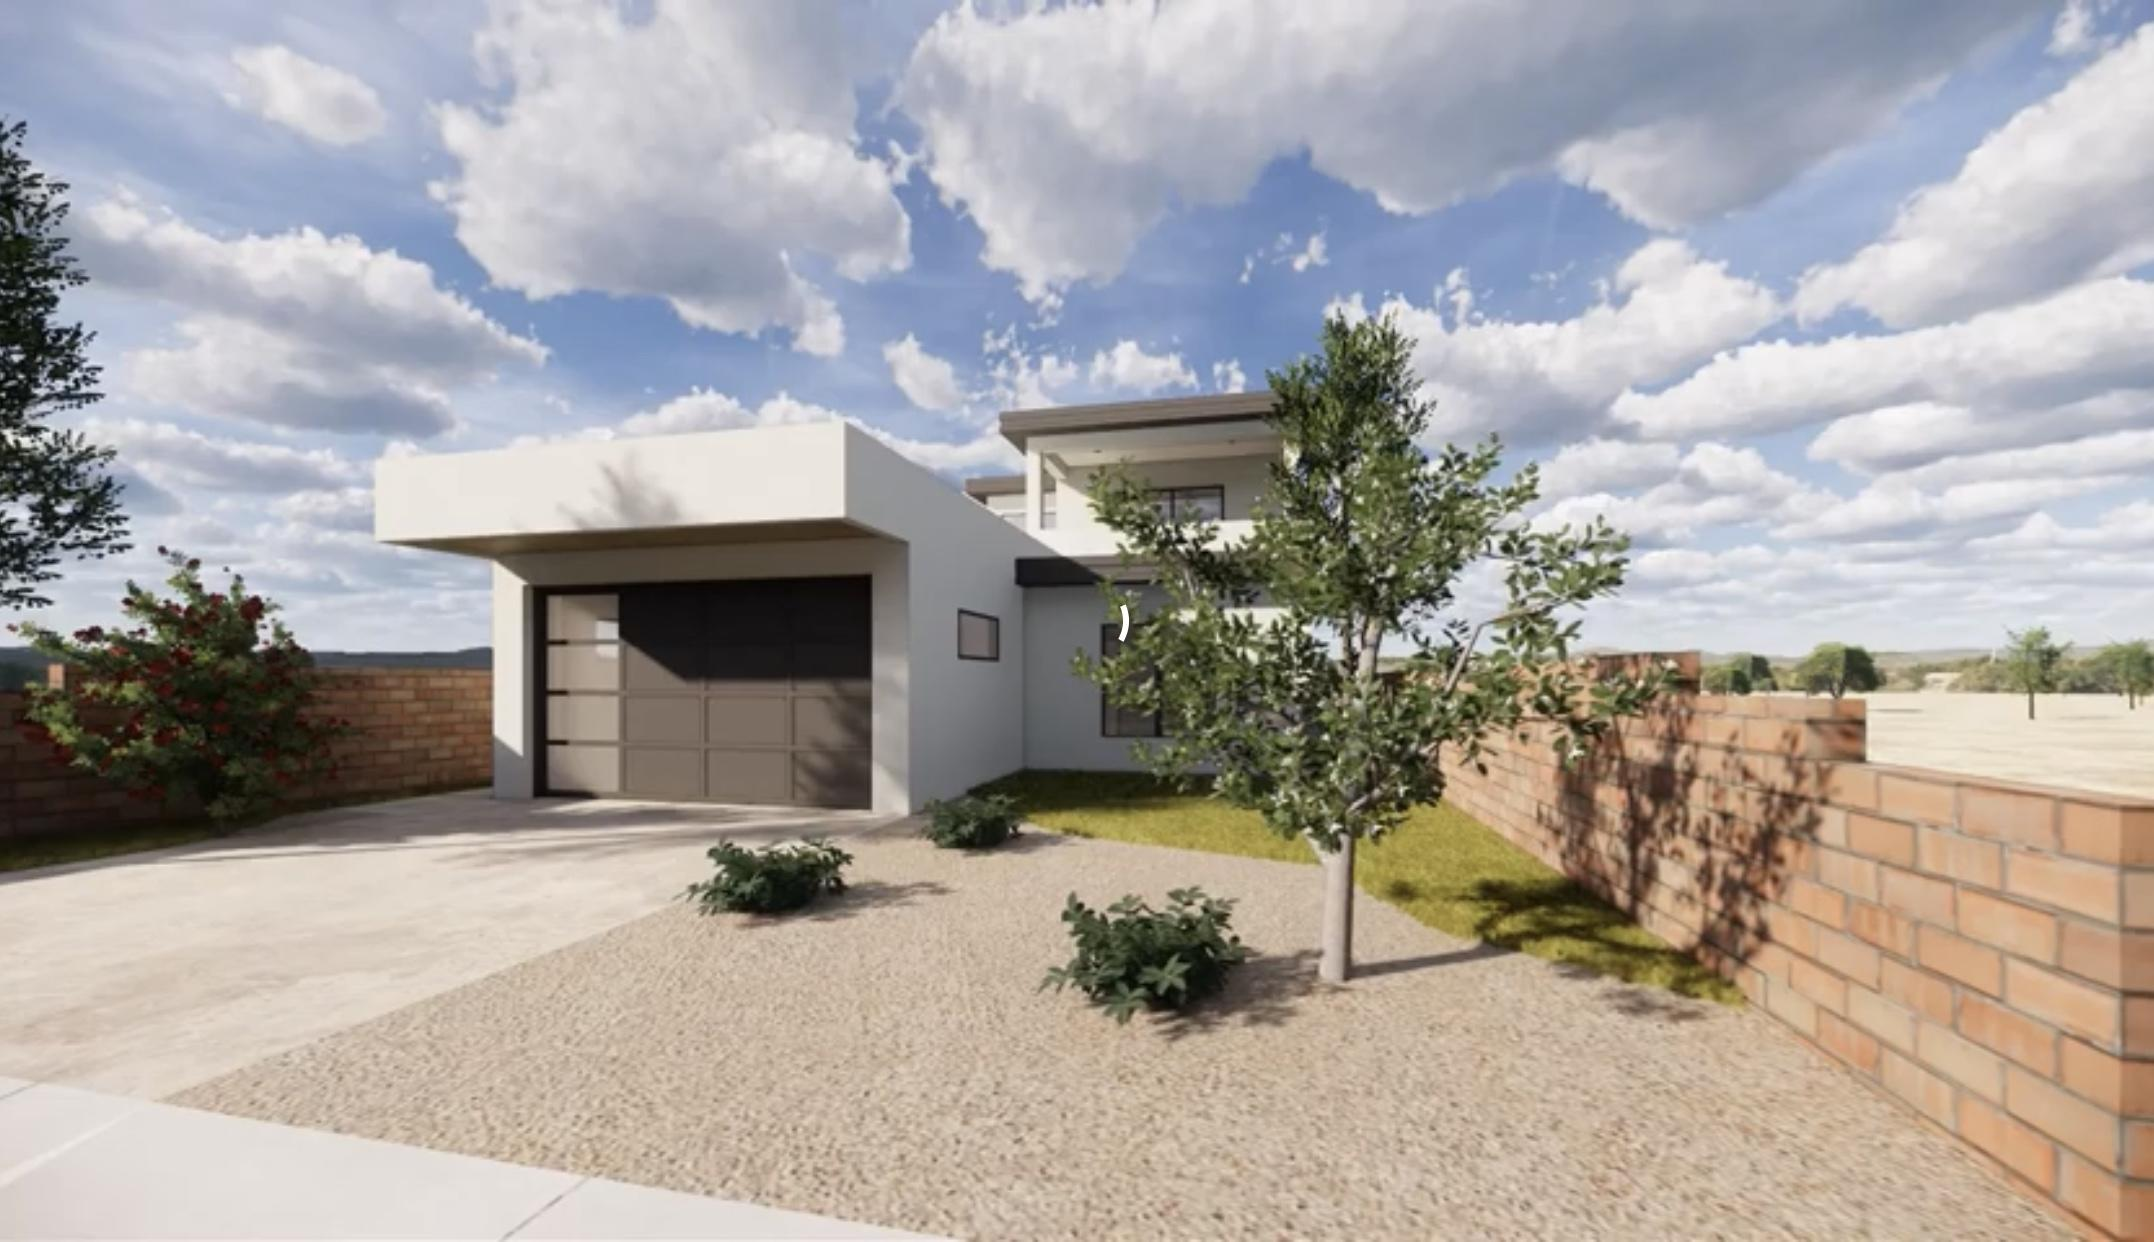 Exquisite Contemporary beauty by Luxury Design Homes, almost complete, in the gated Silver Oak Estates community! Home features 3,033sf with upgrades at every turn! Schedule a showing today!